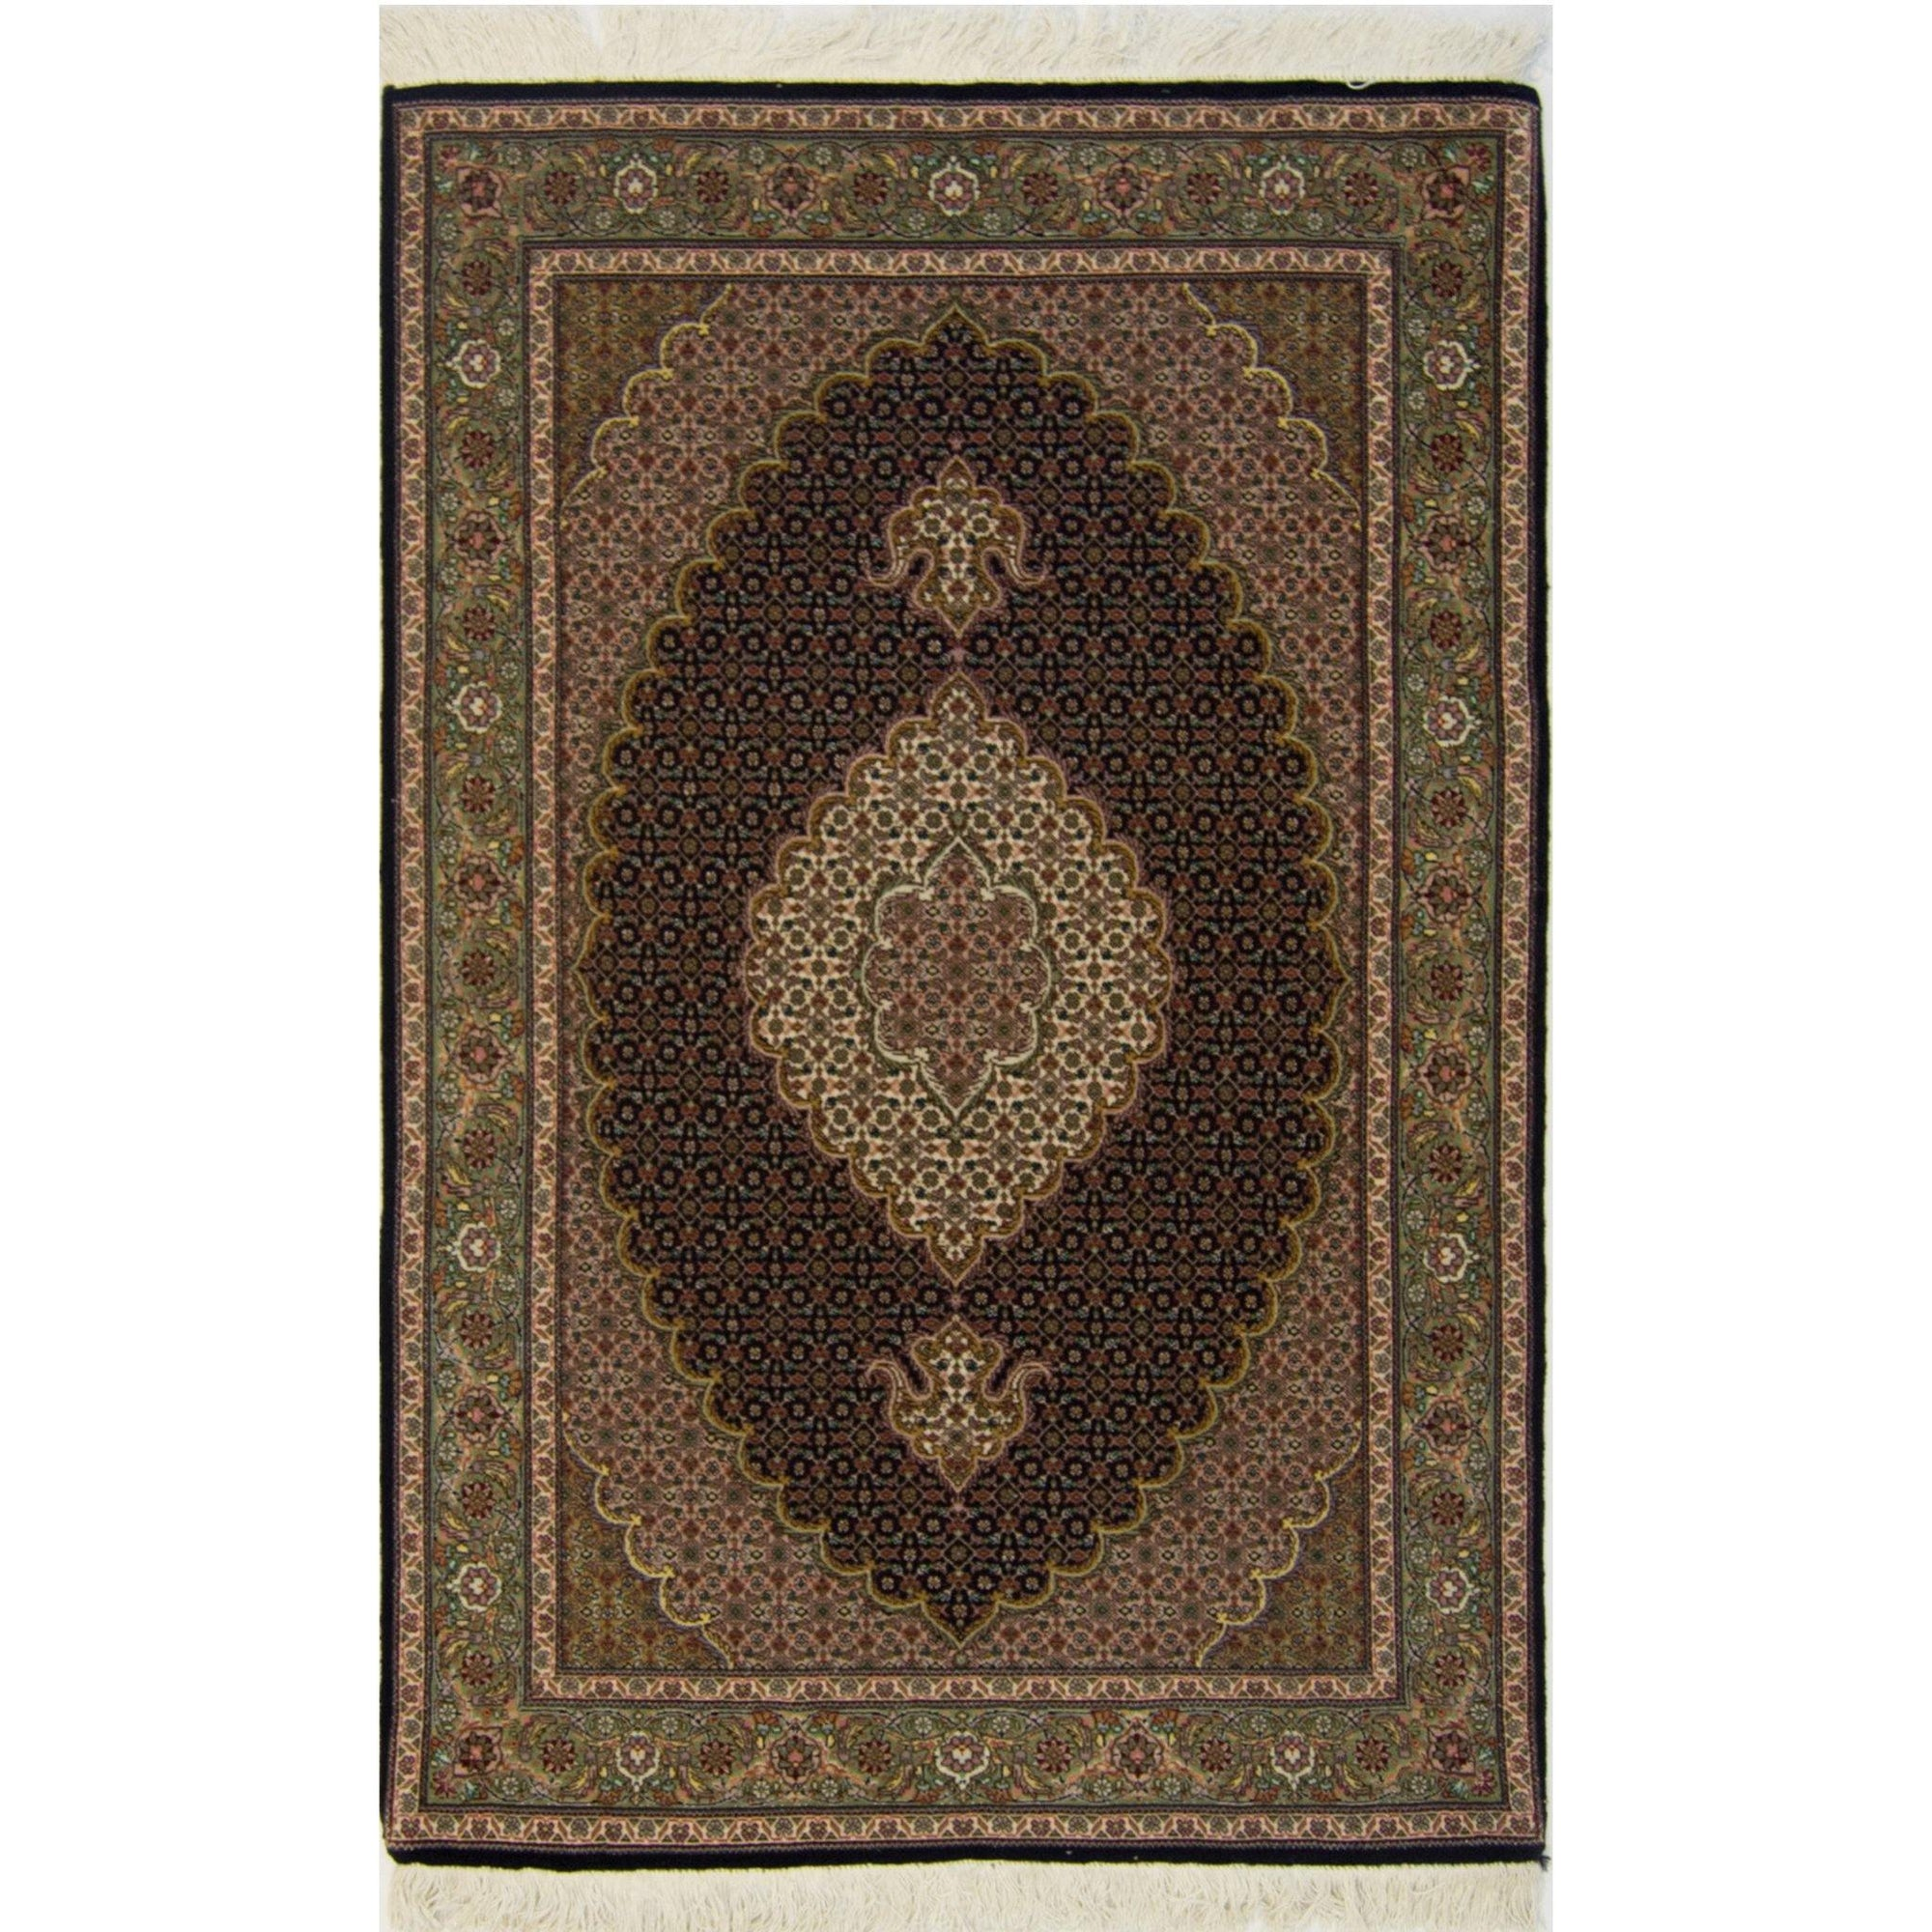 Persian Fine Hand-knotted Wool and Silk Tabriz-Mahi Rug 100 cm x 154 cm Persian-Rug | House-of-Haghi | NewMarket | Auckland | NZ | Handmade Persian Rugs | Hand Knotted Persian Rugs